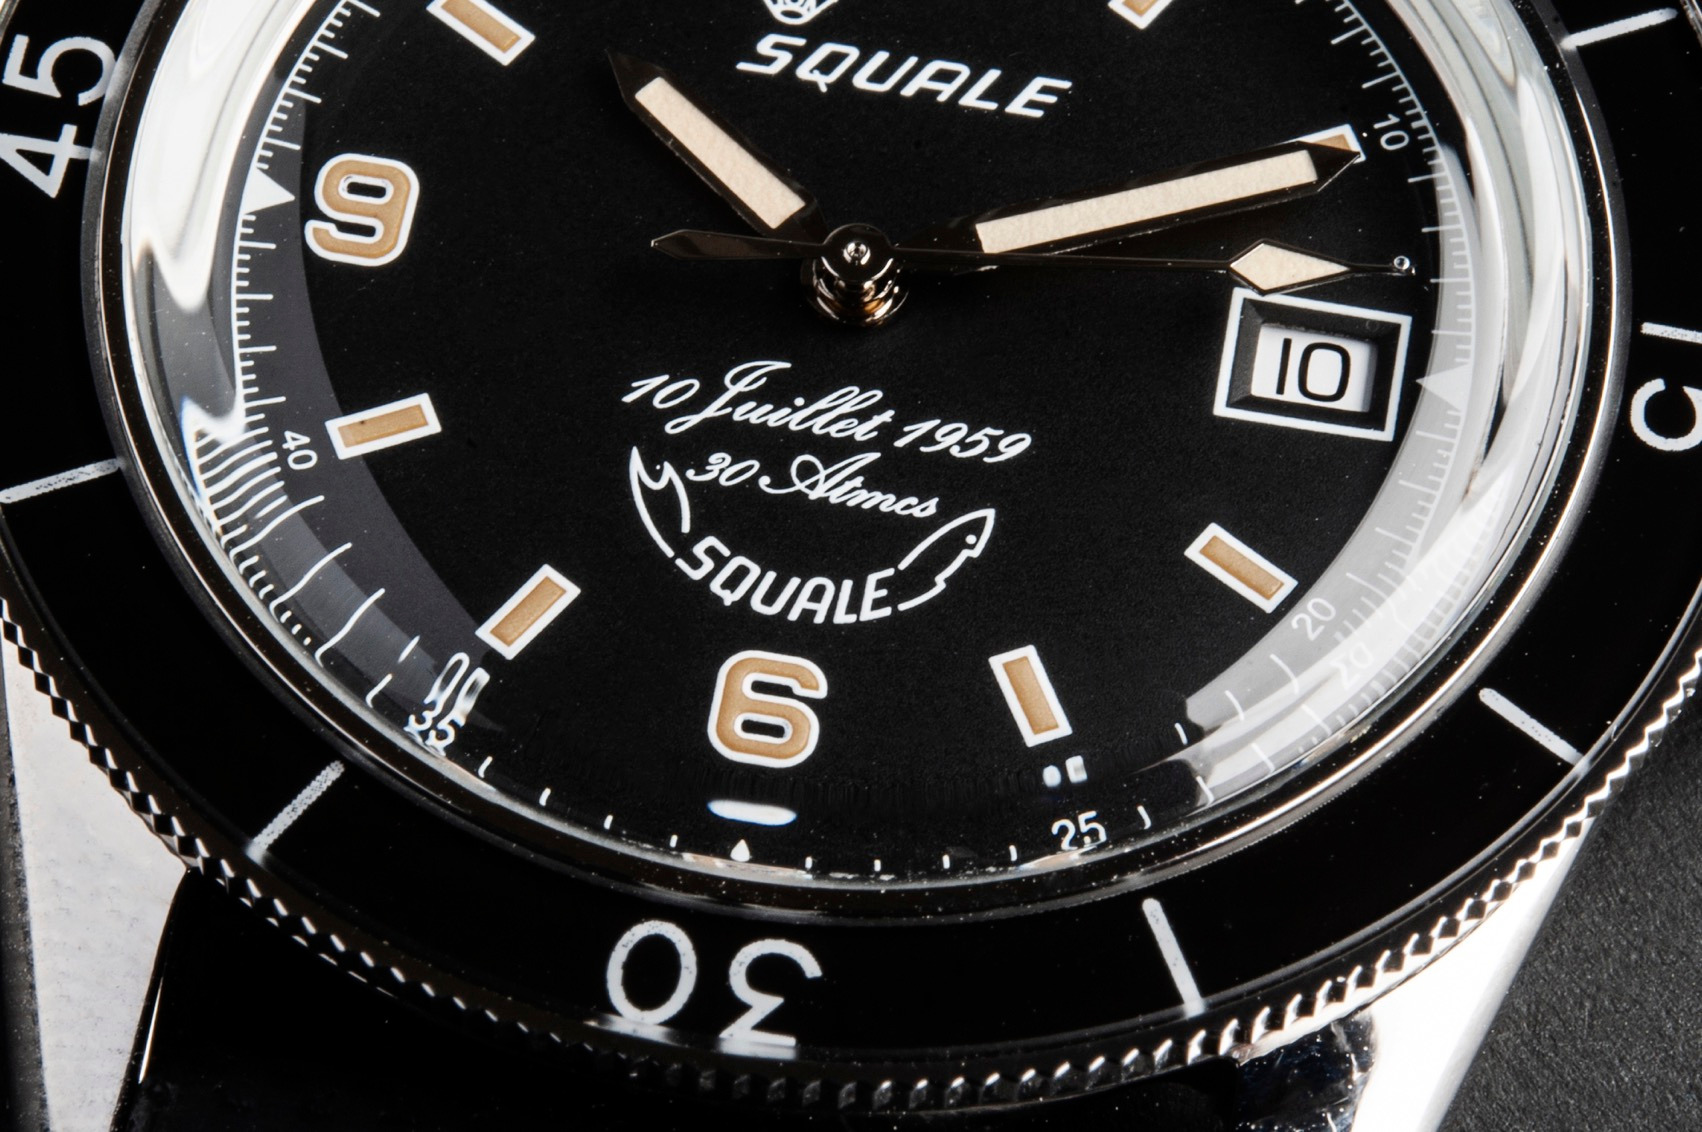 Squale 60 Year Limited Edition Watch Dial